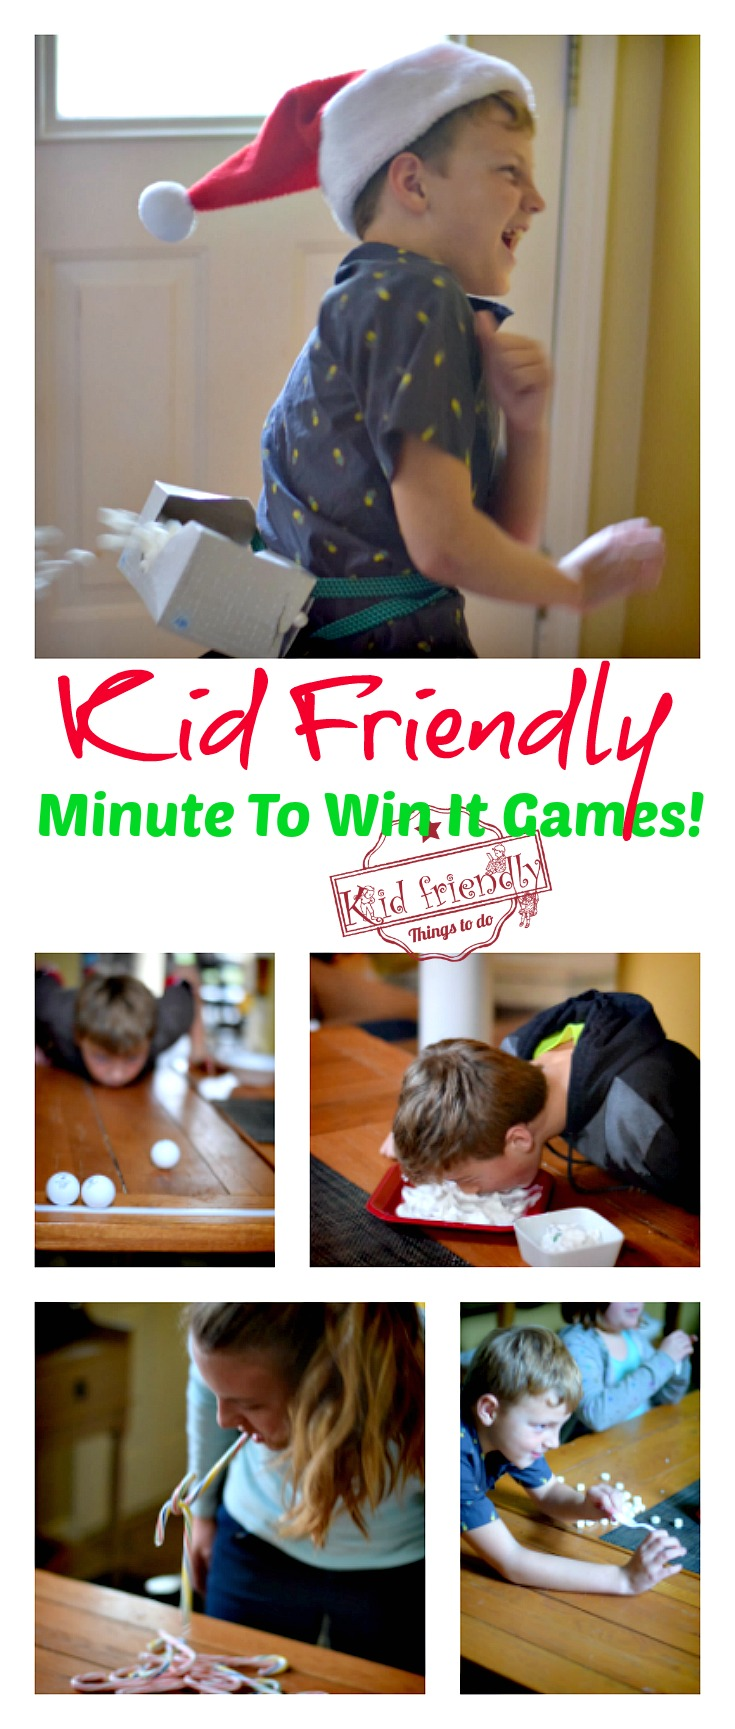 Minute to win it games for Christmas